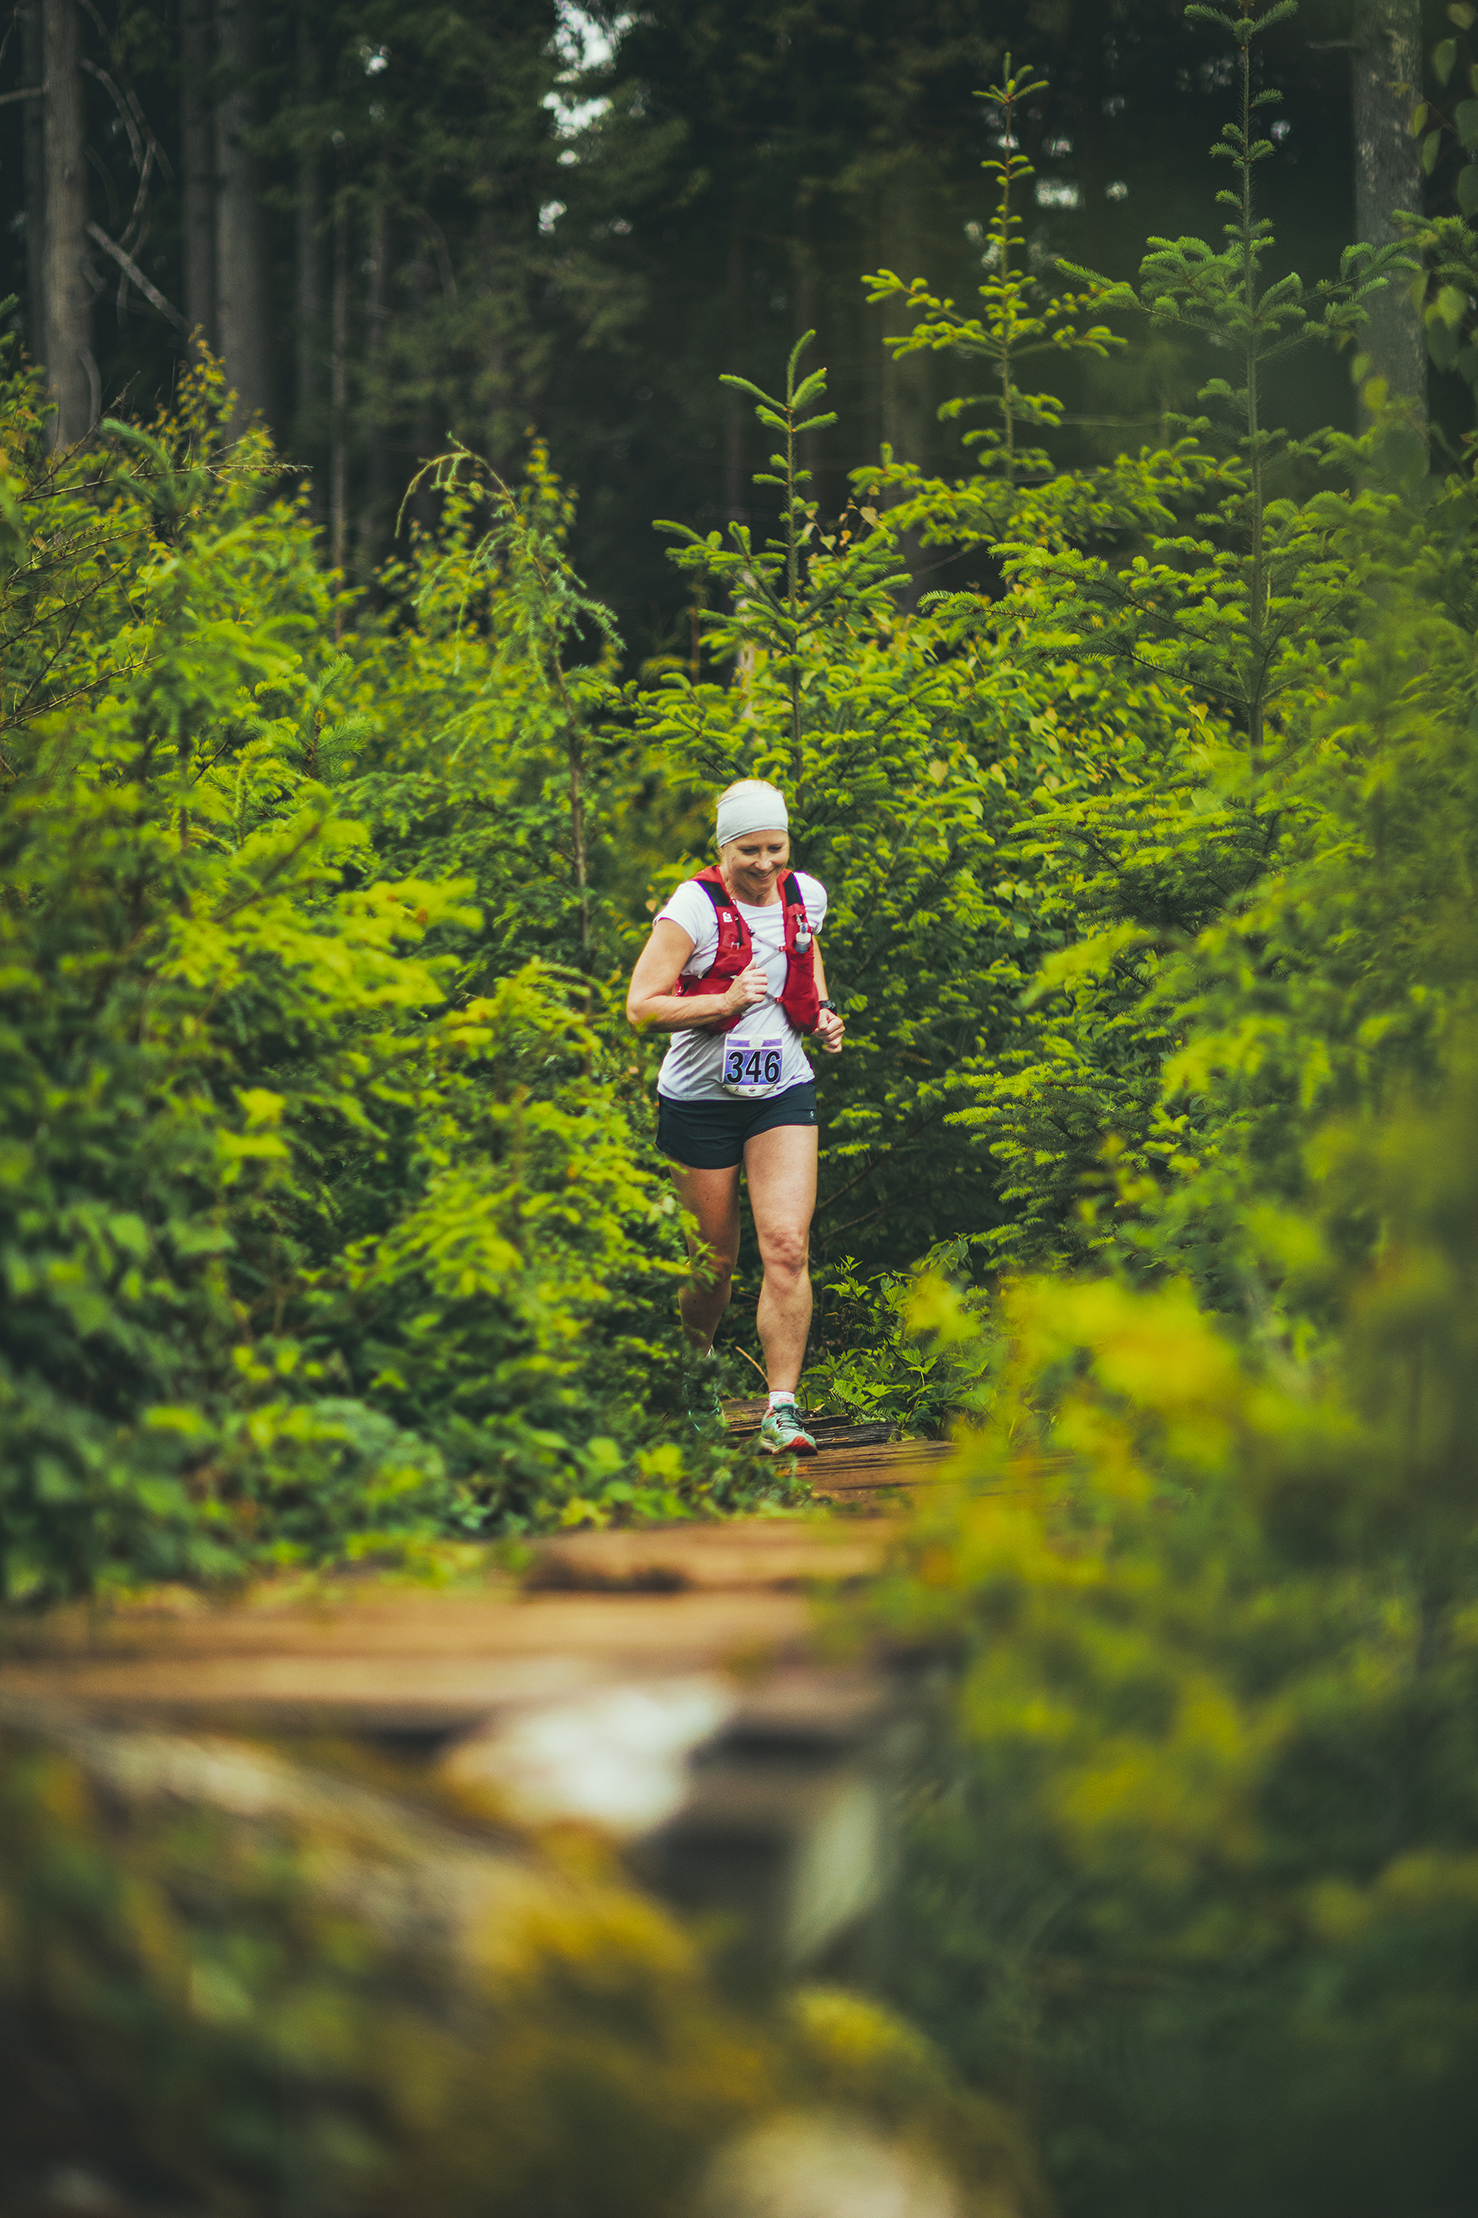 Fraser Valley Trail Races - Bear Mountain - IMG_1583 by Brice Ferre Studio - Vancouver Portrait Adventure and Athlete Photographer.jpg